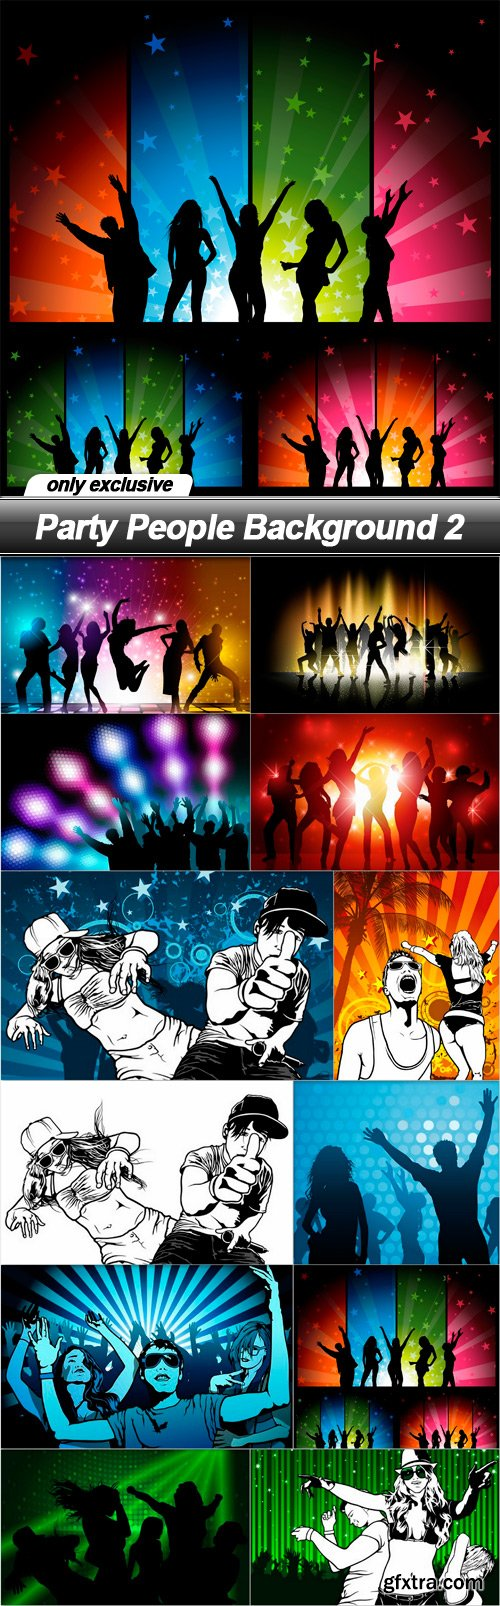 Party People Background 2 - 12 EPS